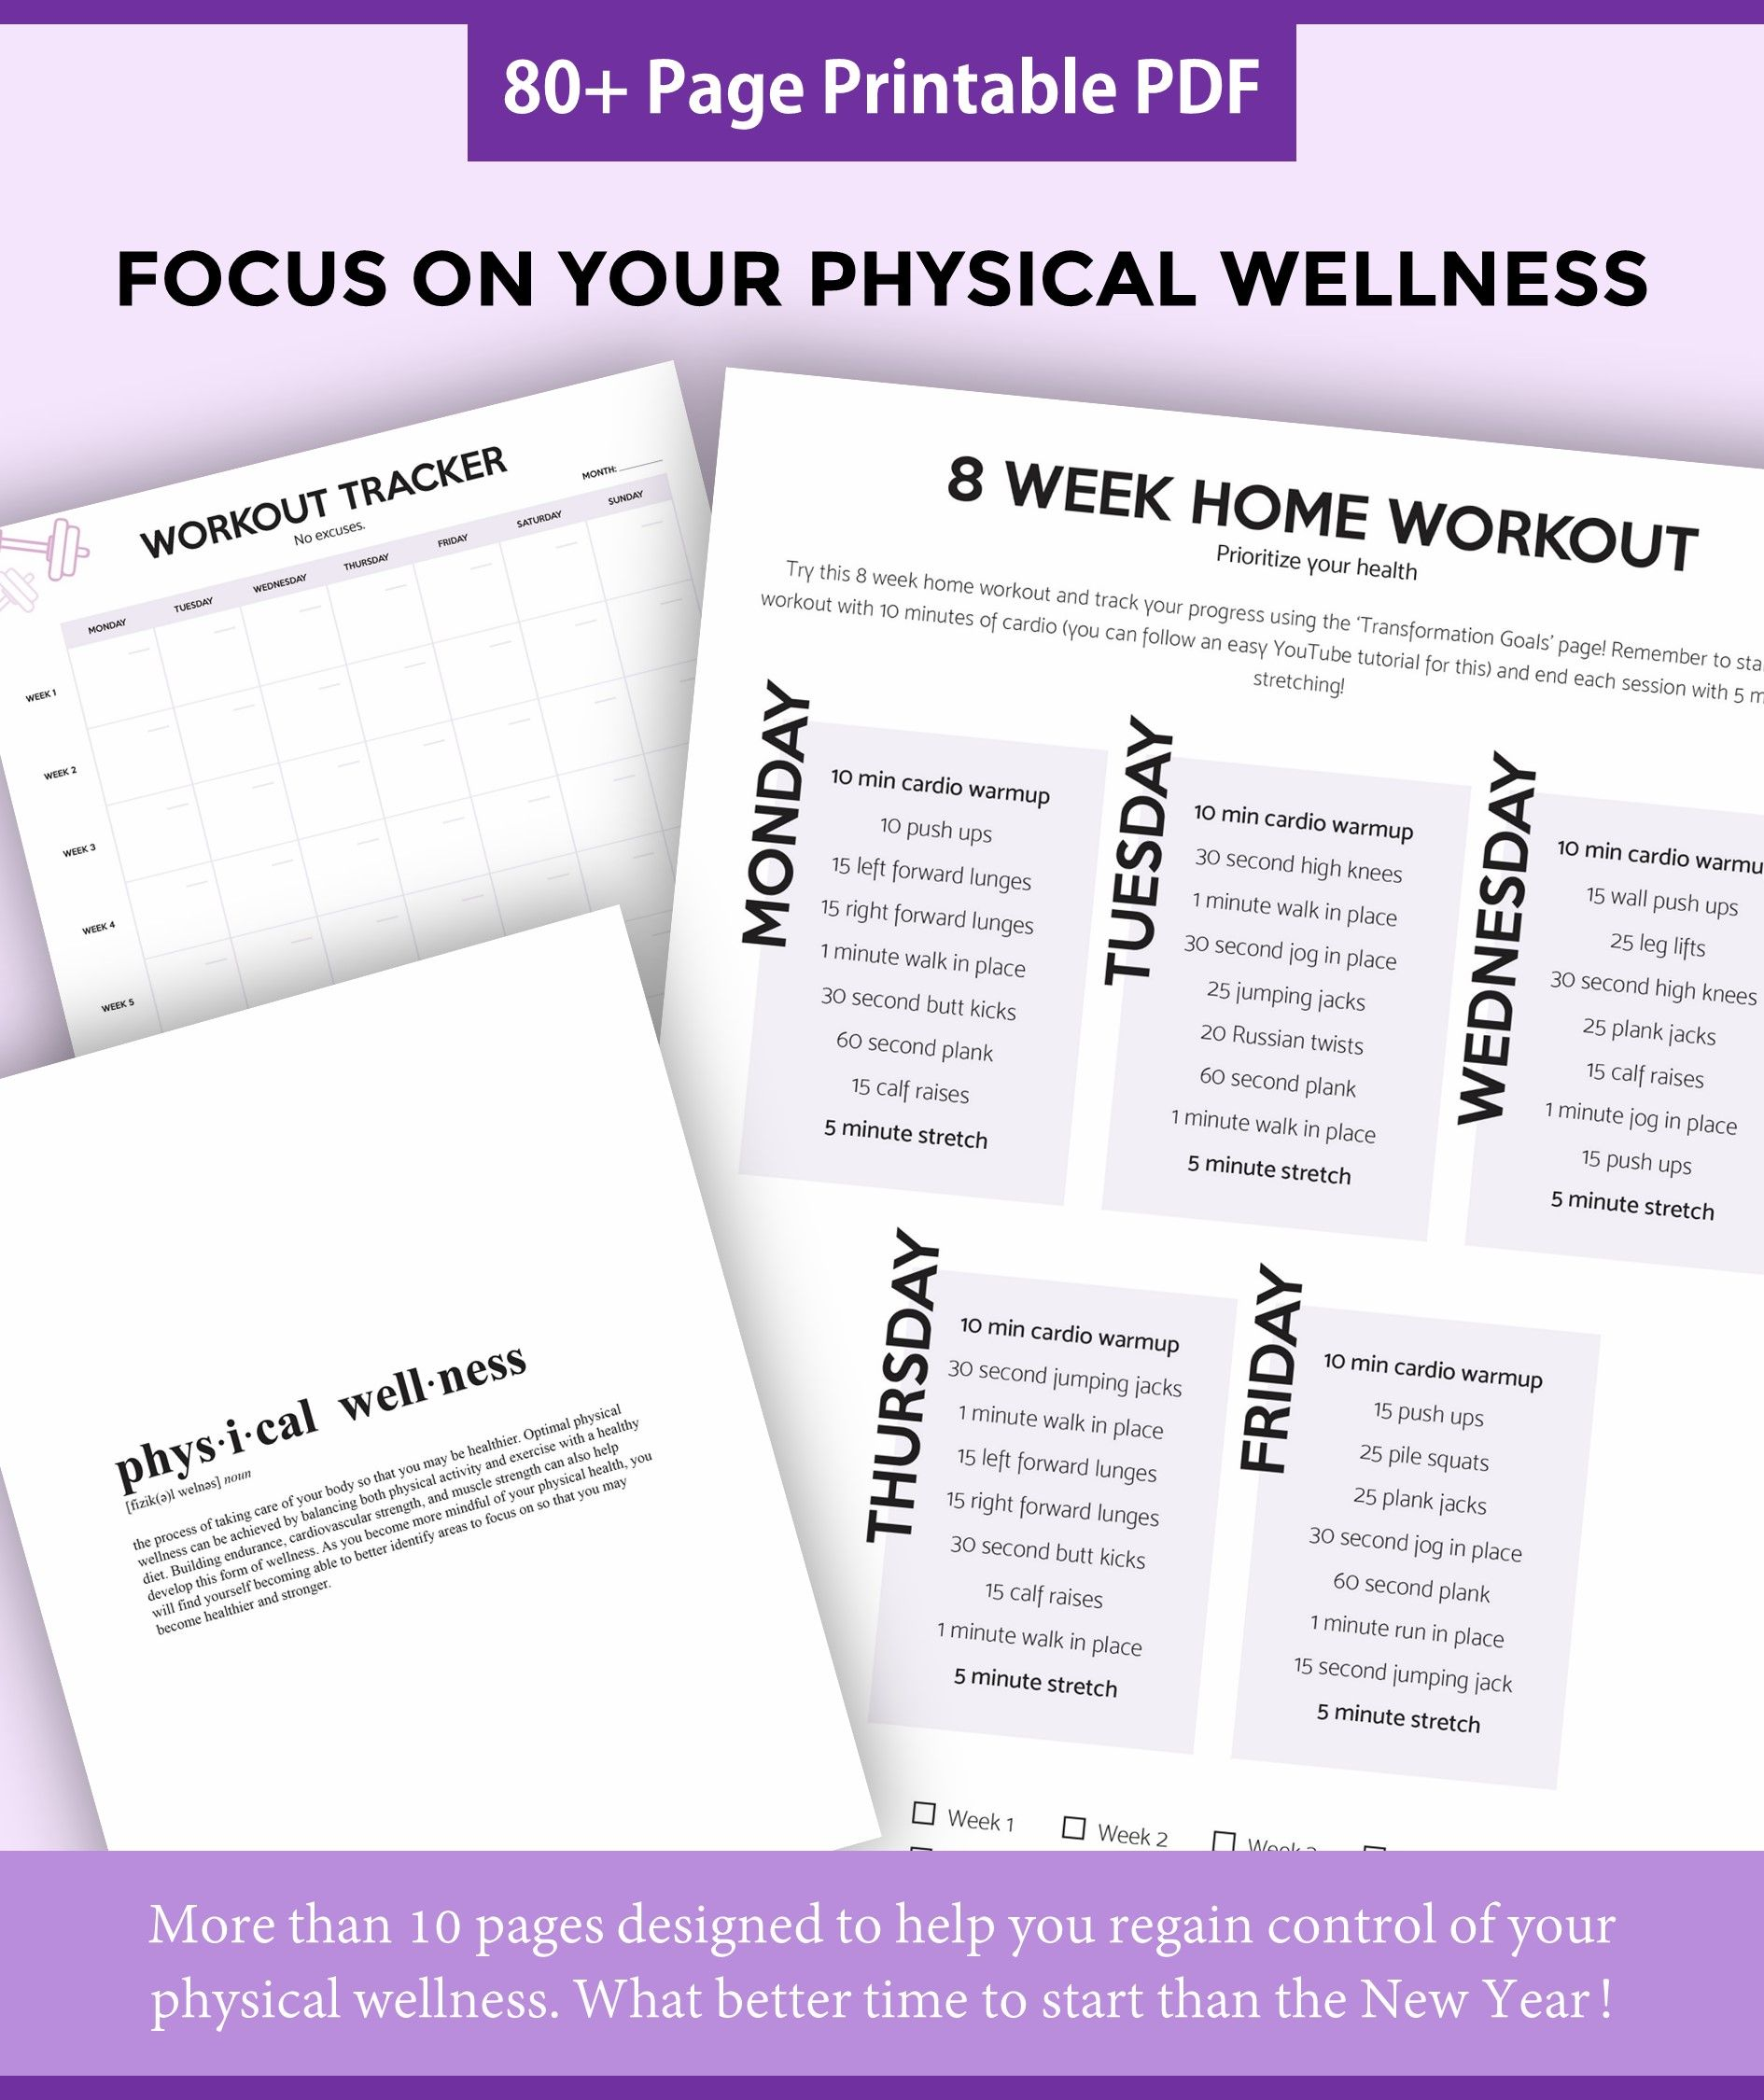 Use this instant printable self-care planner to make the